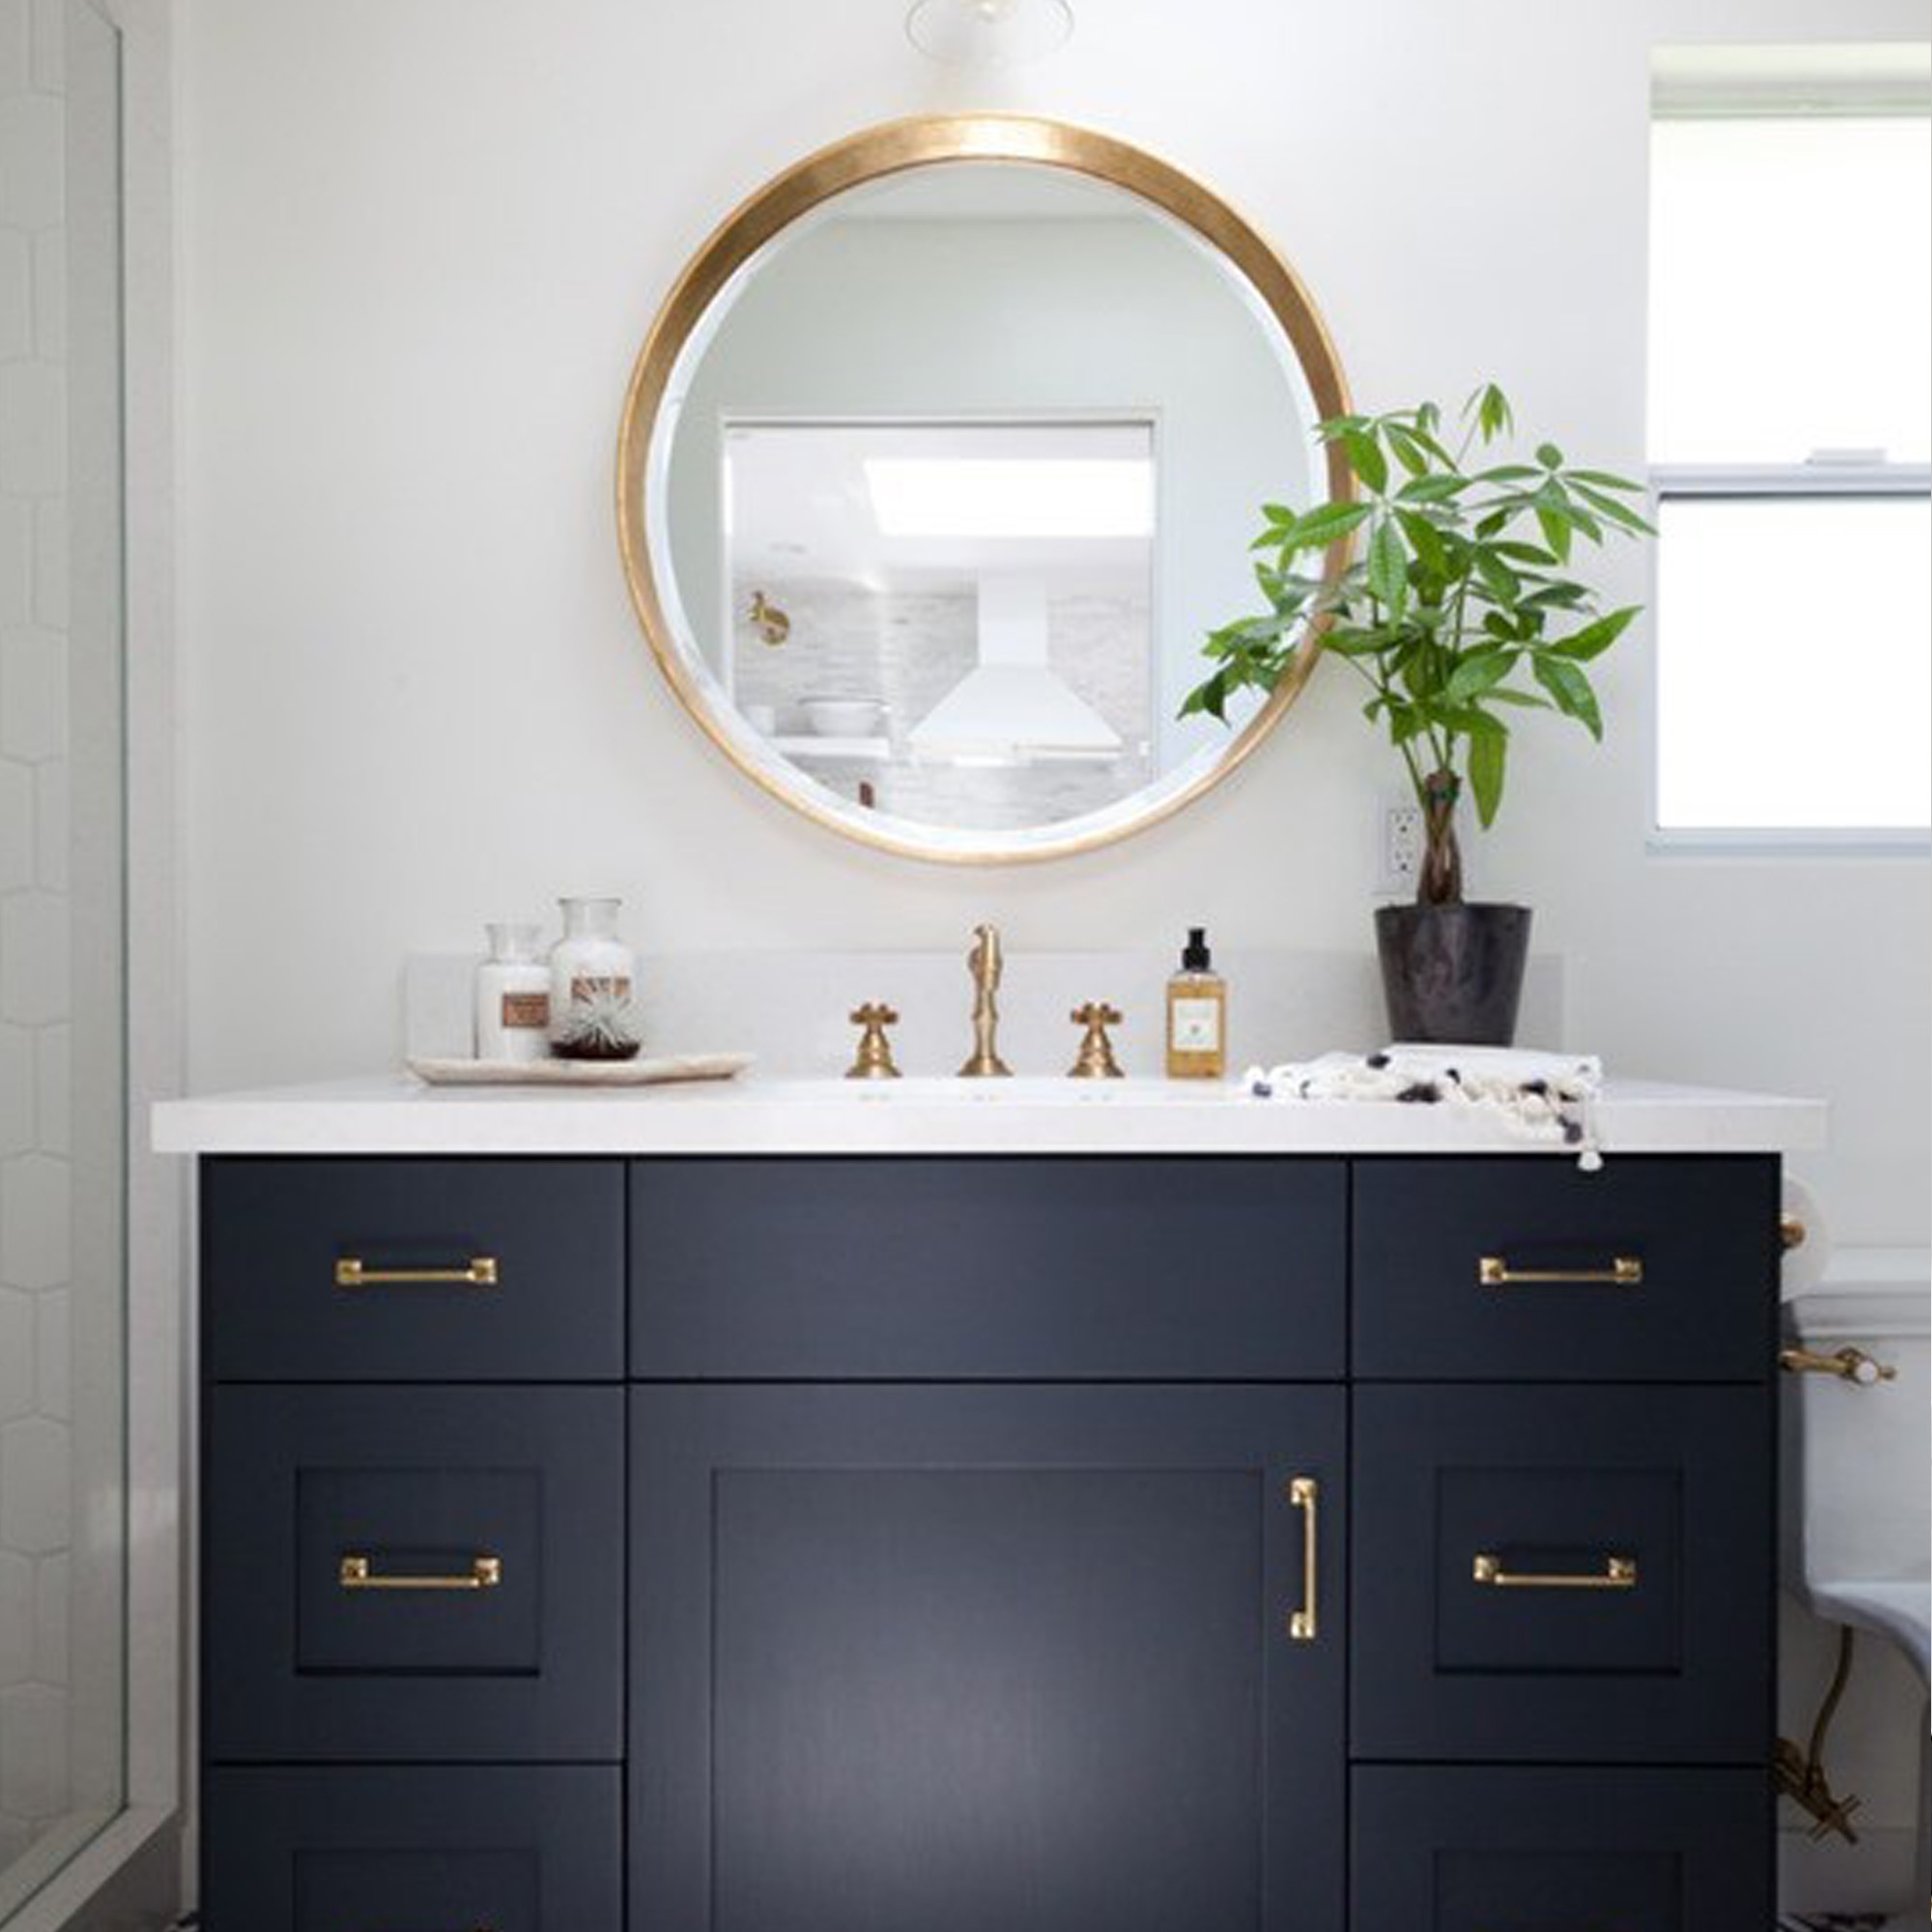 Elegant Bathroom Ideas How High To Place Your Bathroom Fixtures Inspired To Style